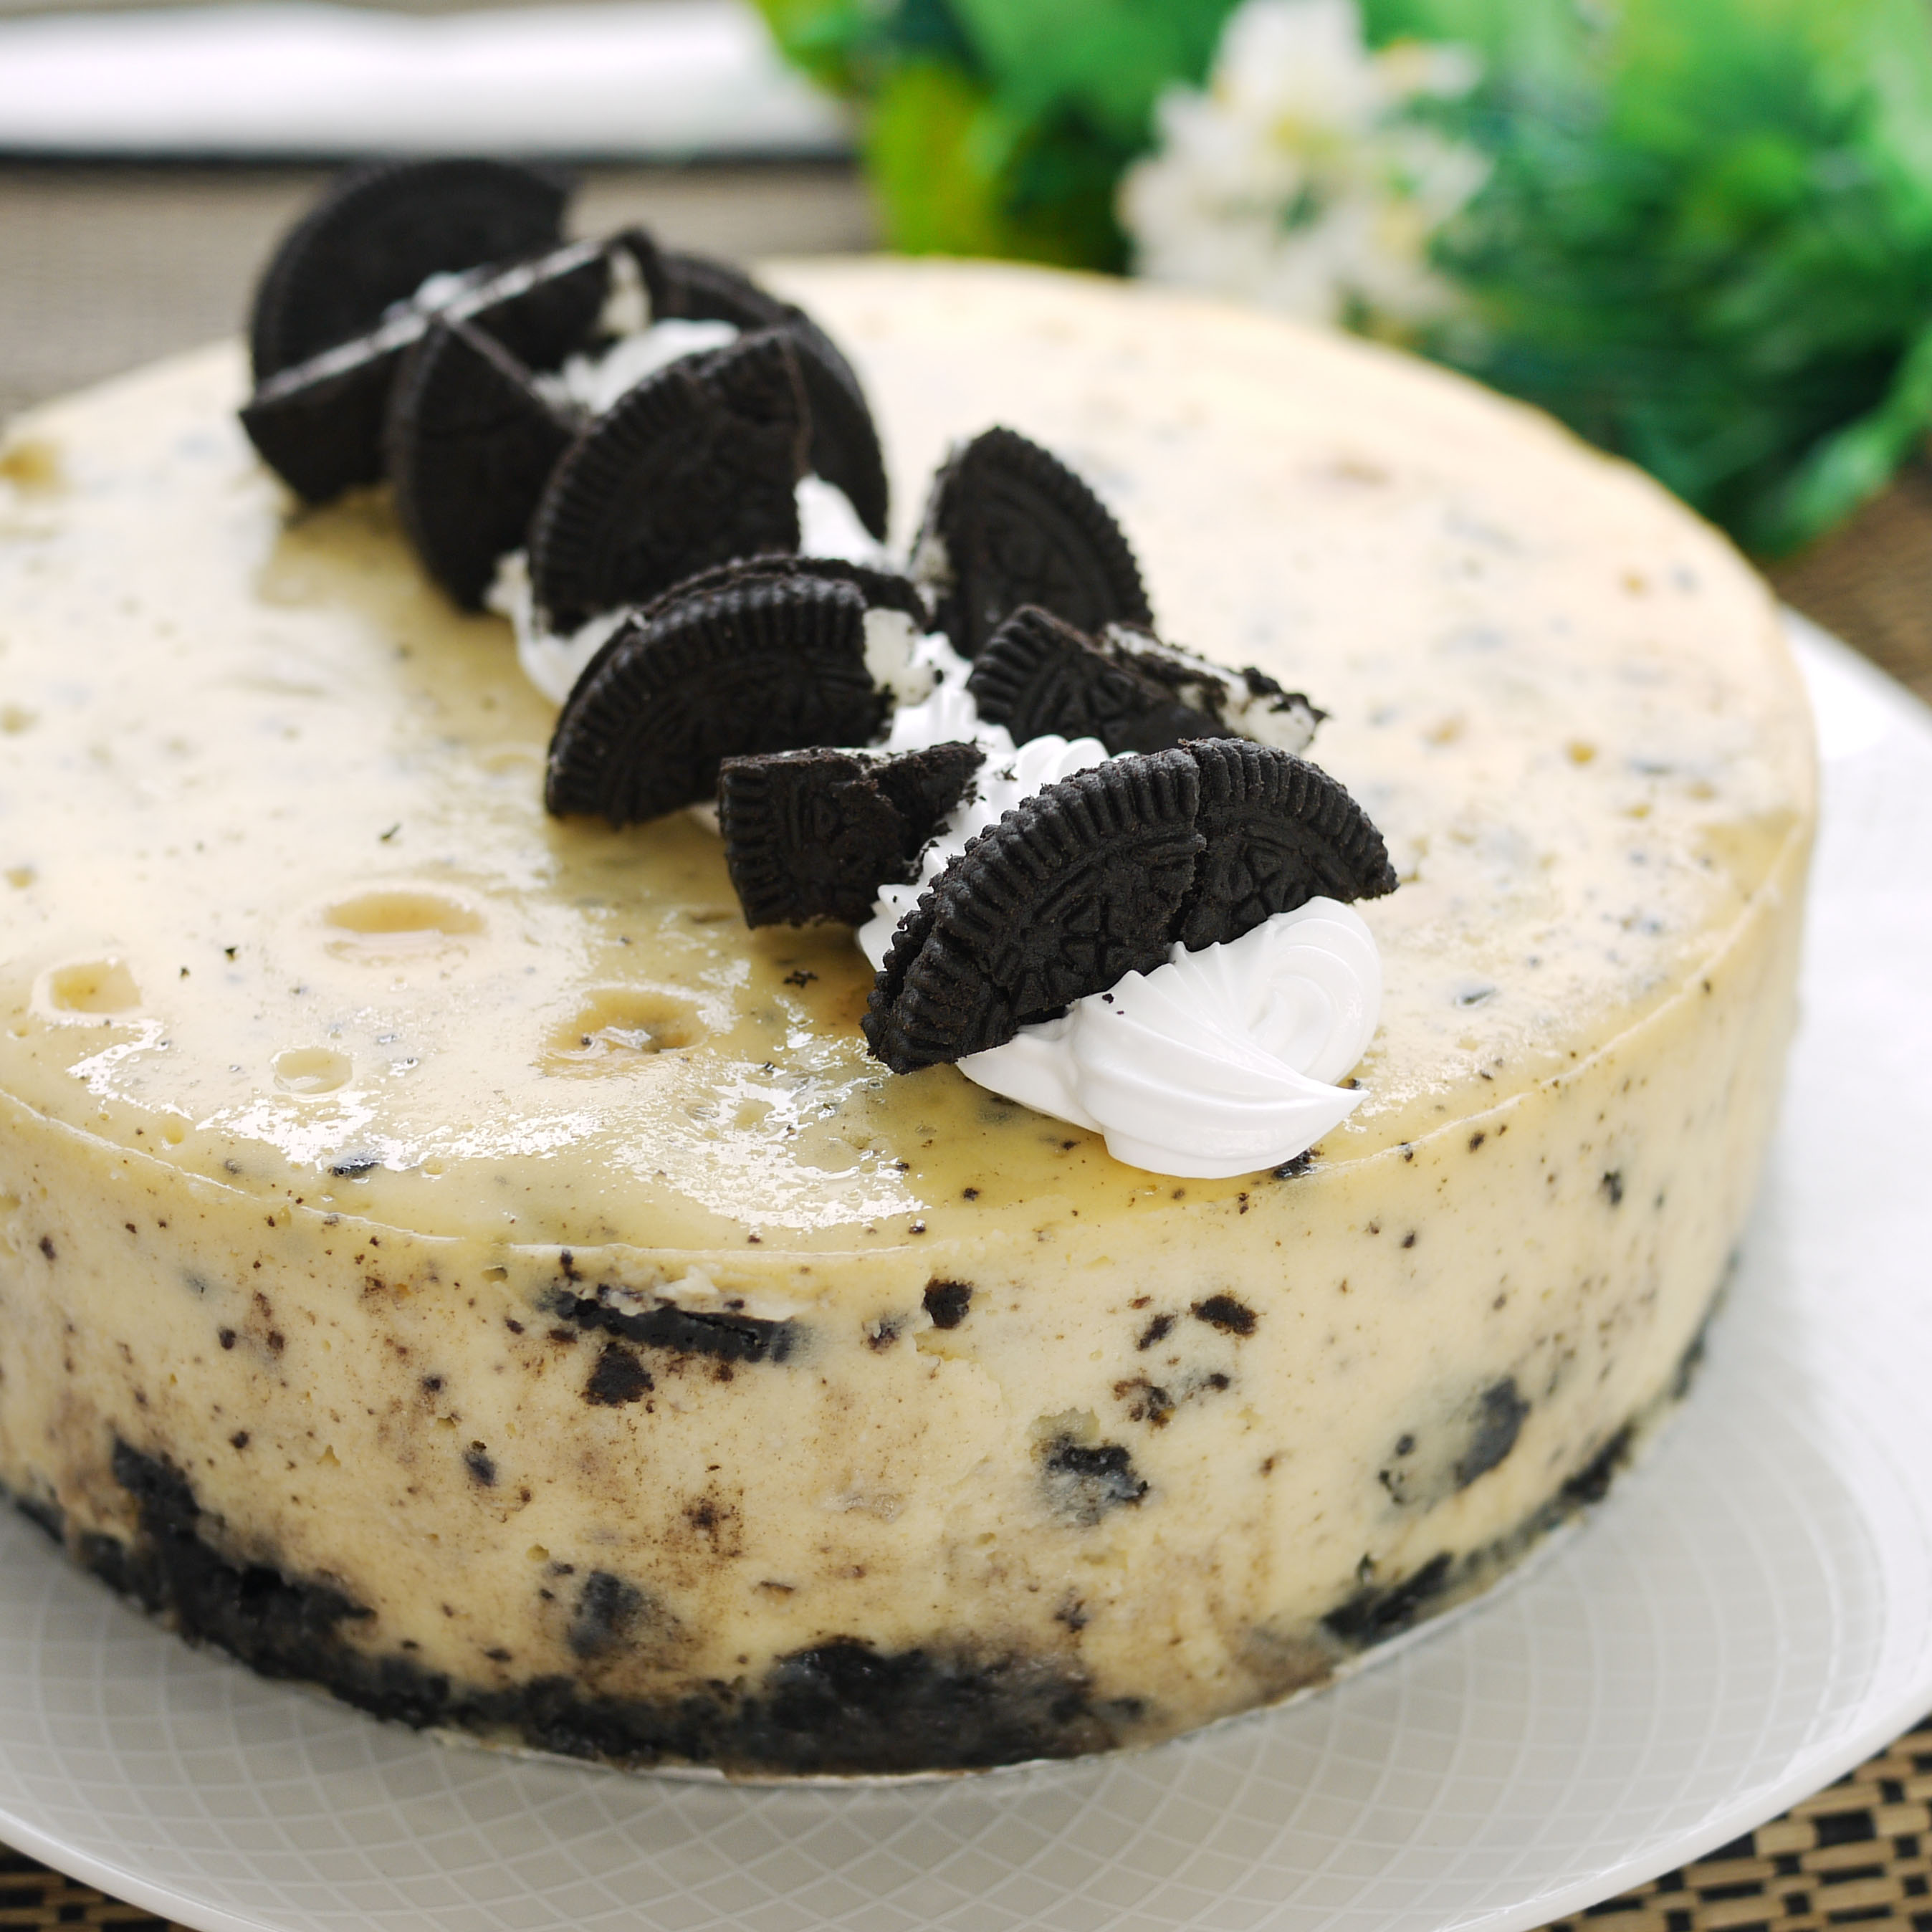 Drowning sorrows in Oreo Cheesecake | Crustabakes